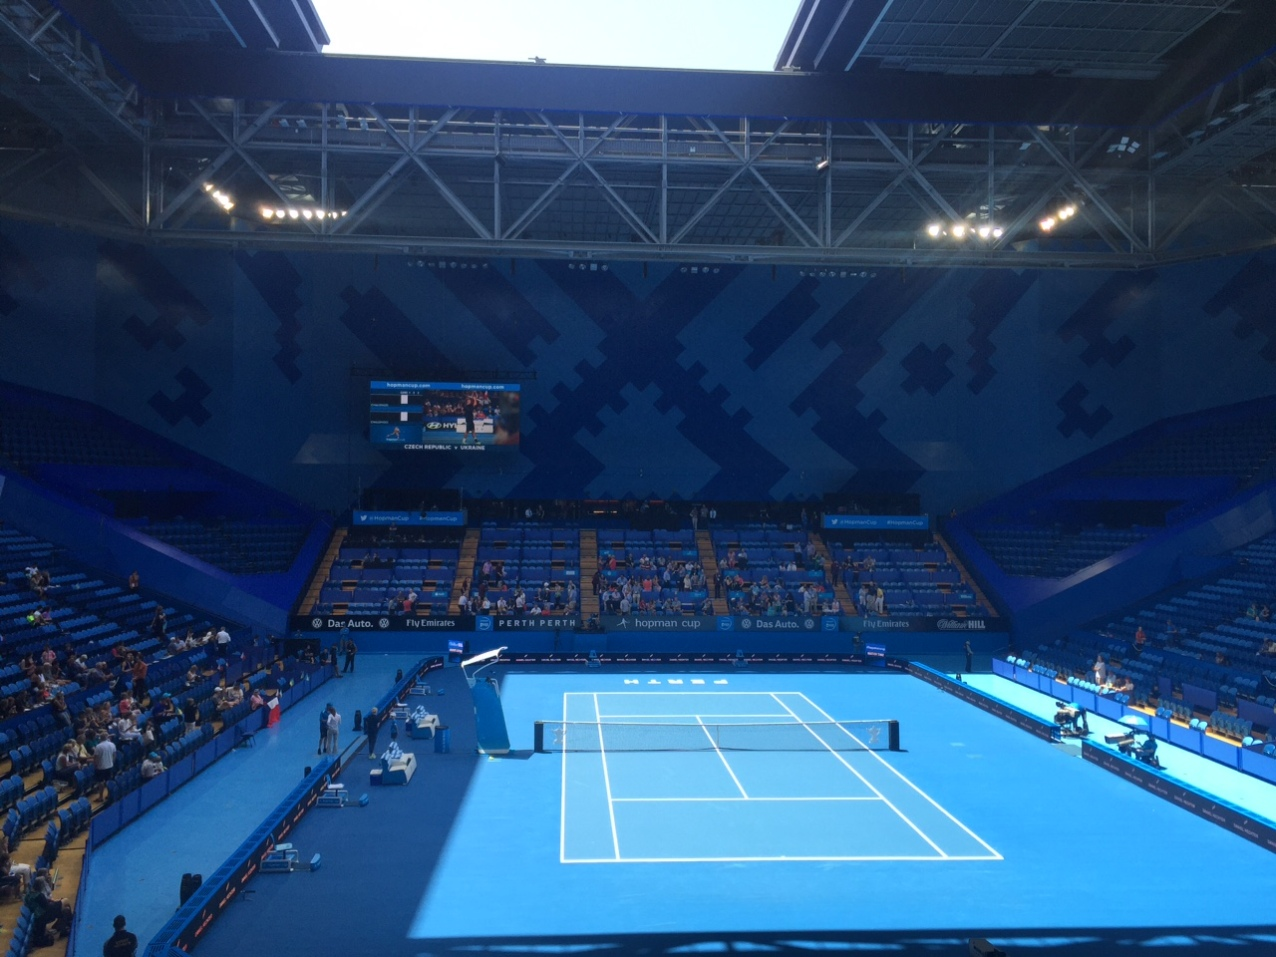 Perth Arena set up for tennis